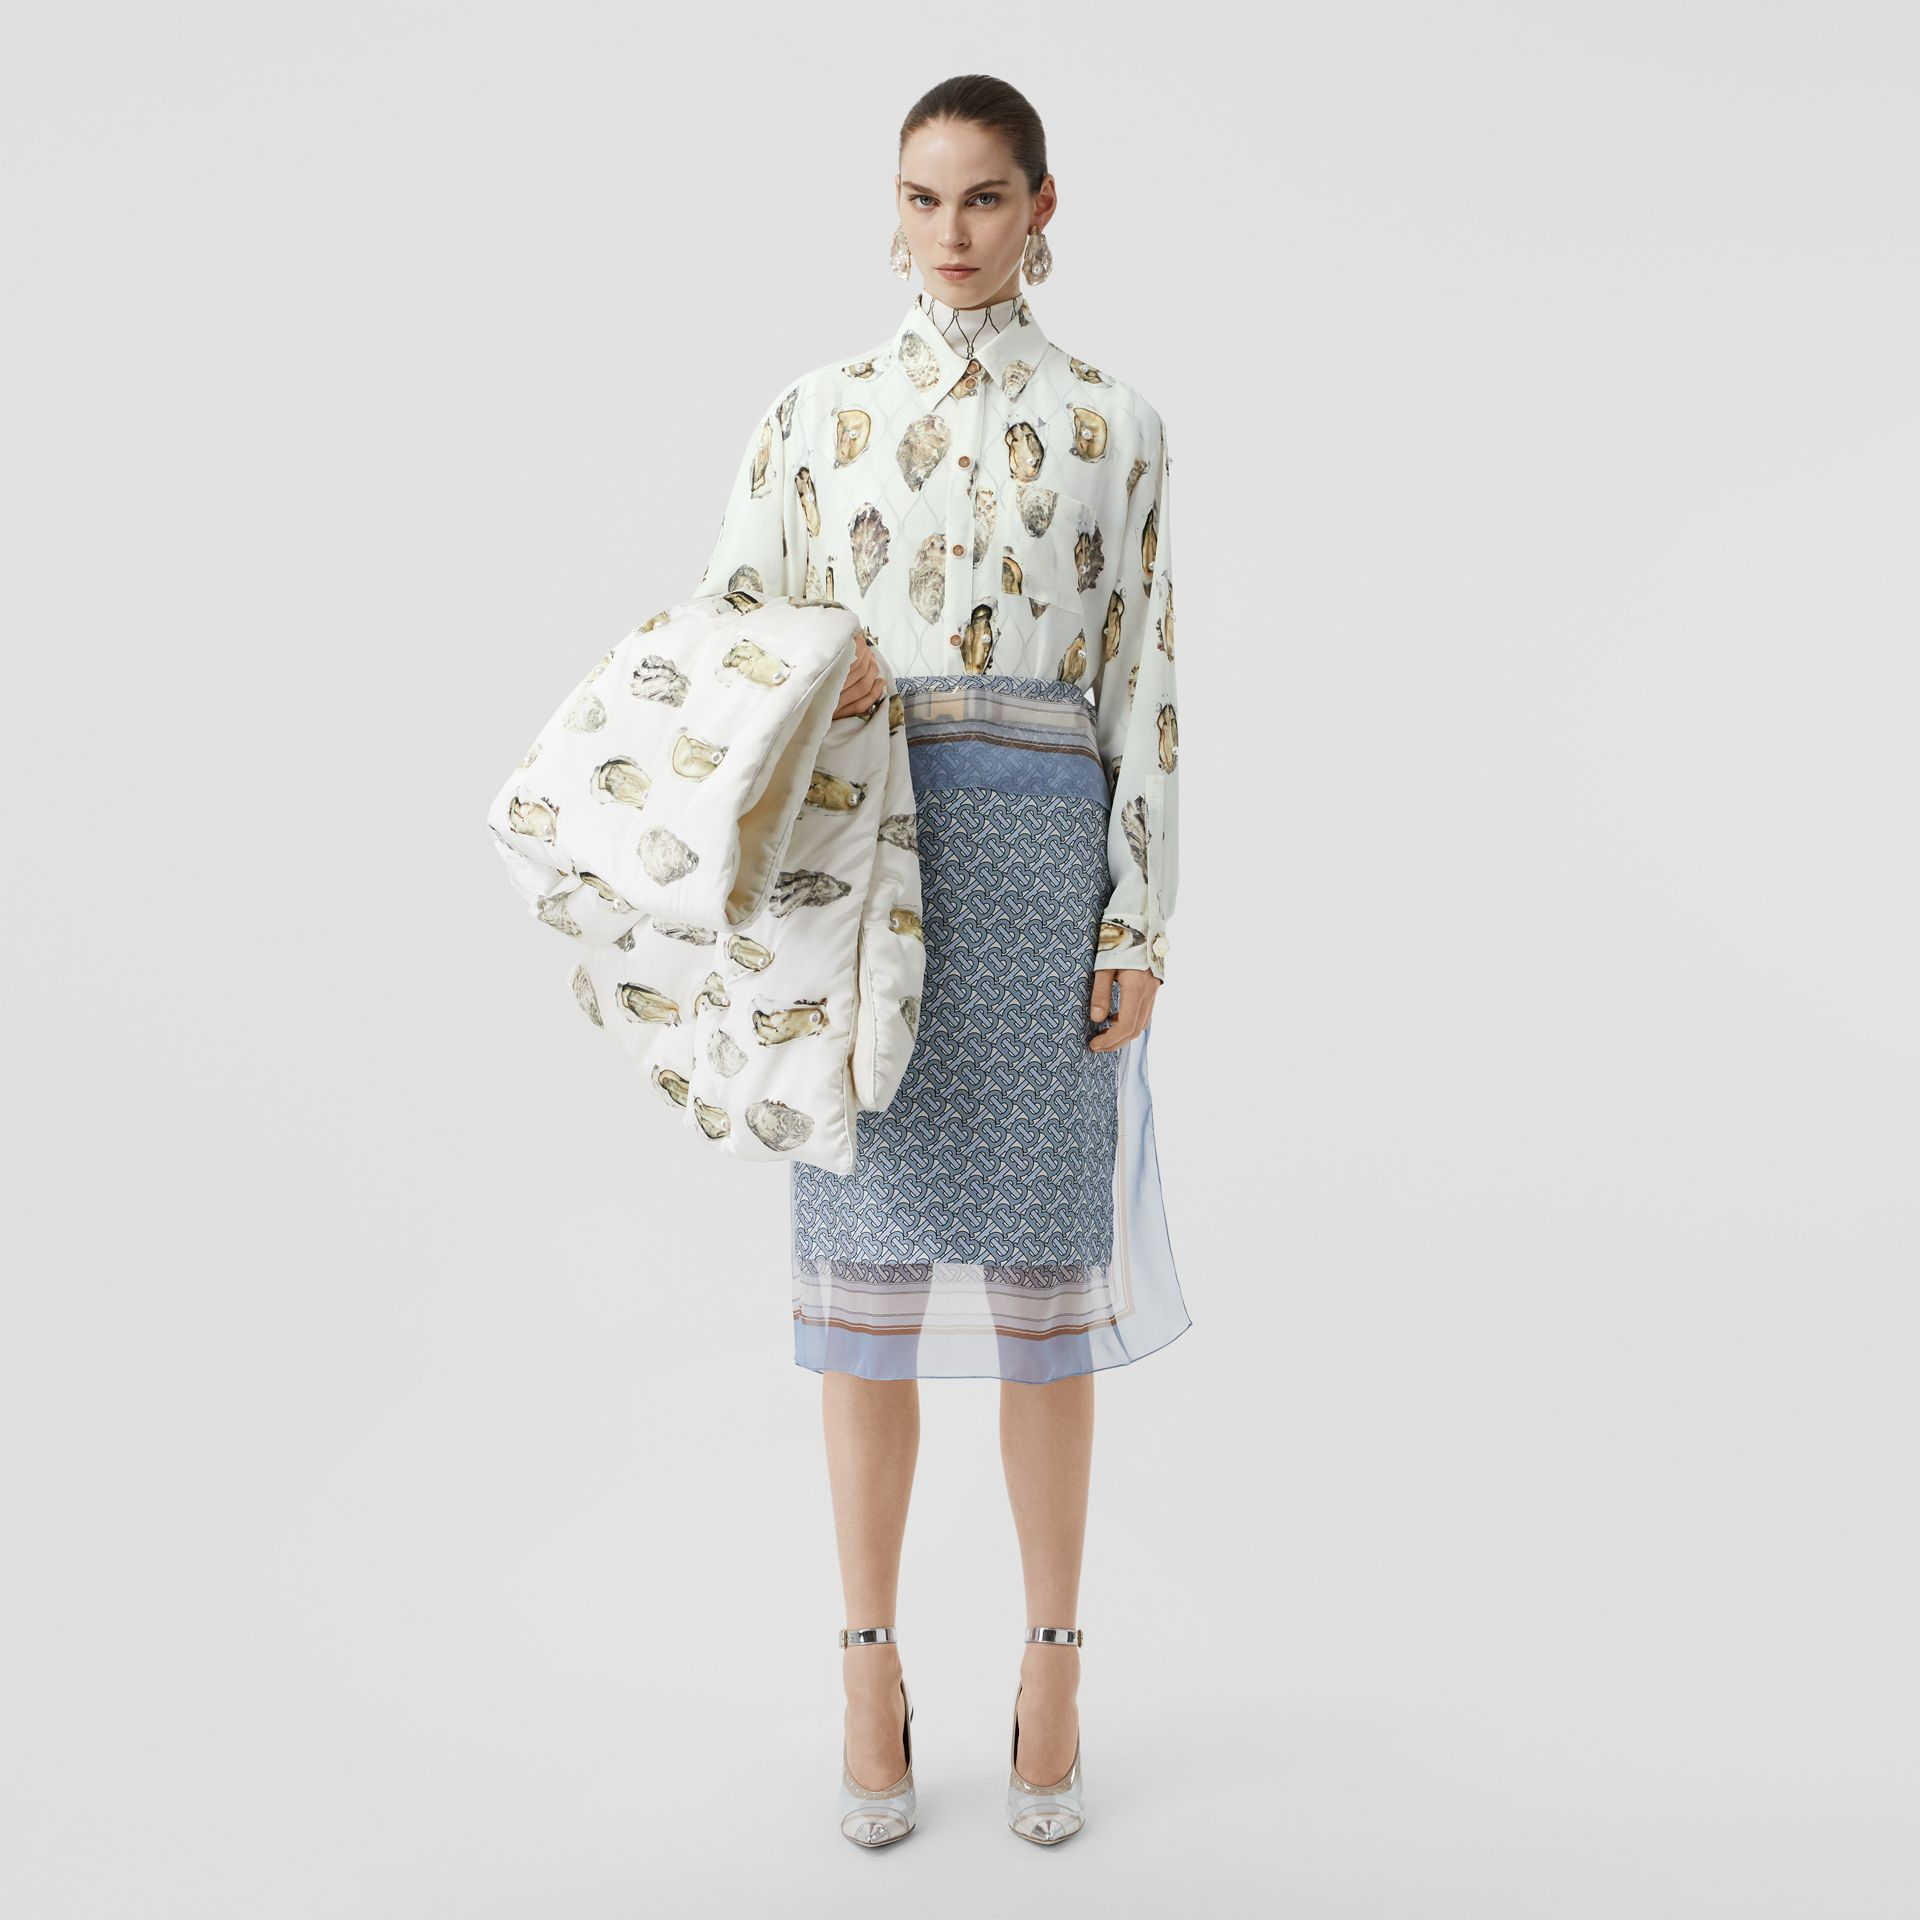 Embellished Oyster Print Silk Oversized Shirt in White - Women | Burberry - gallery image 6